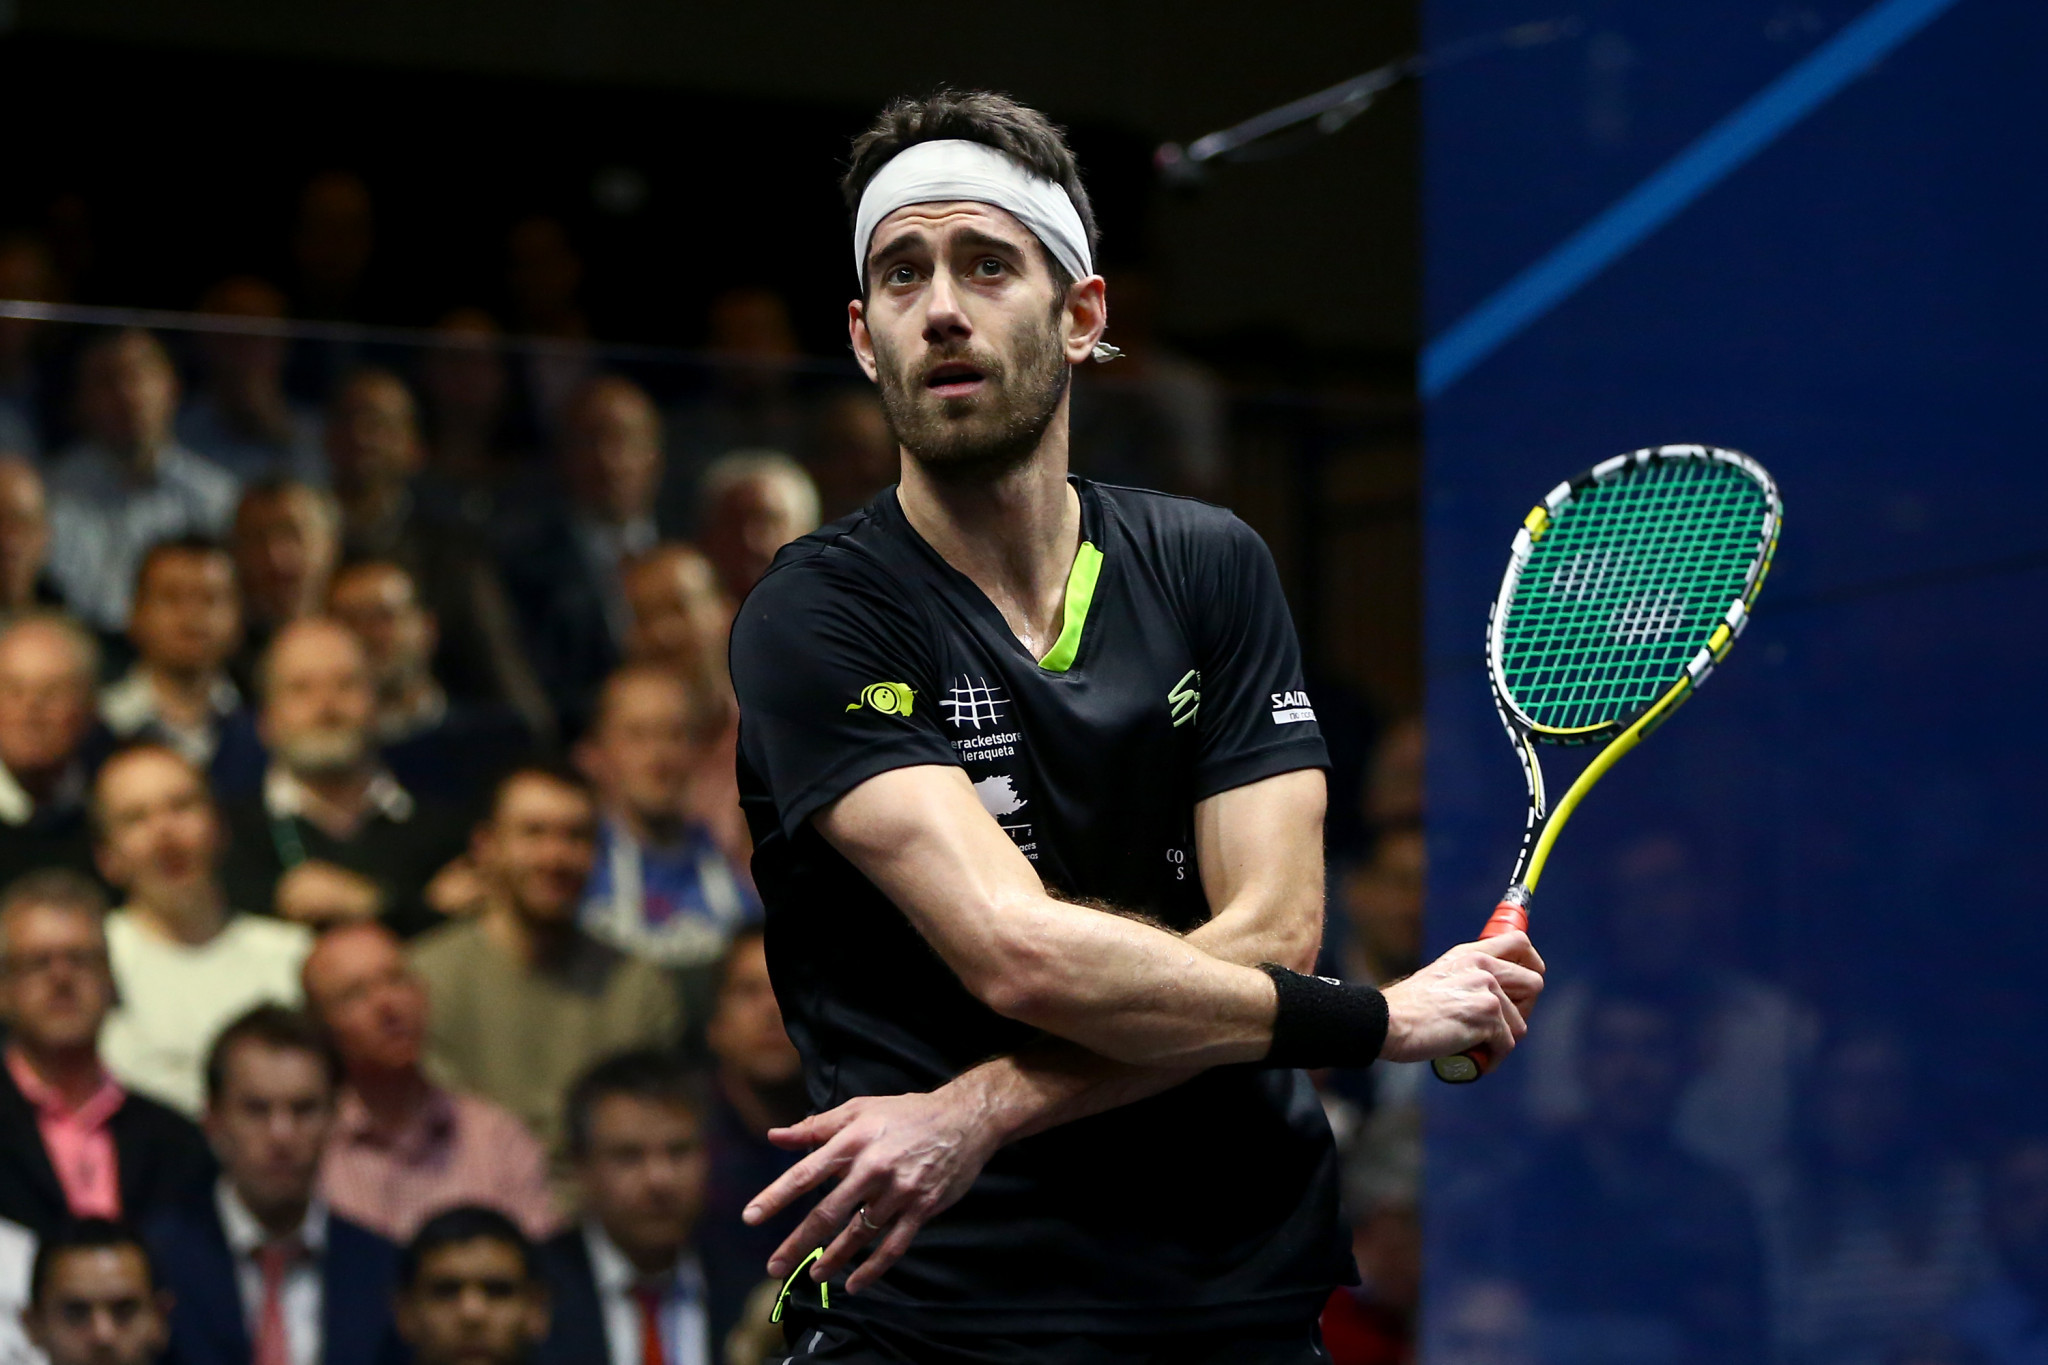 Spain's Borja Golan beat Cameron Pilley in round one and will now play top seed Mohamed Elshorbagy ©Getty Images